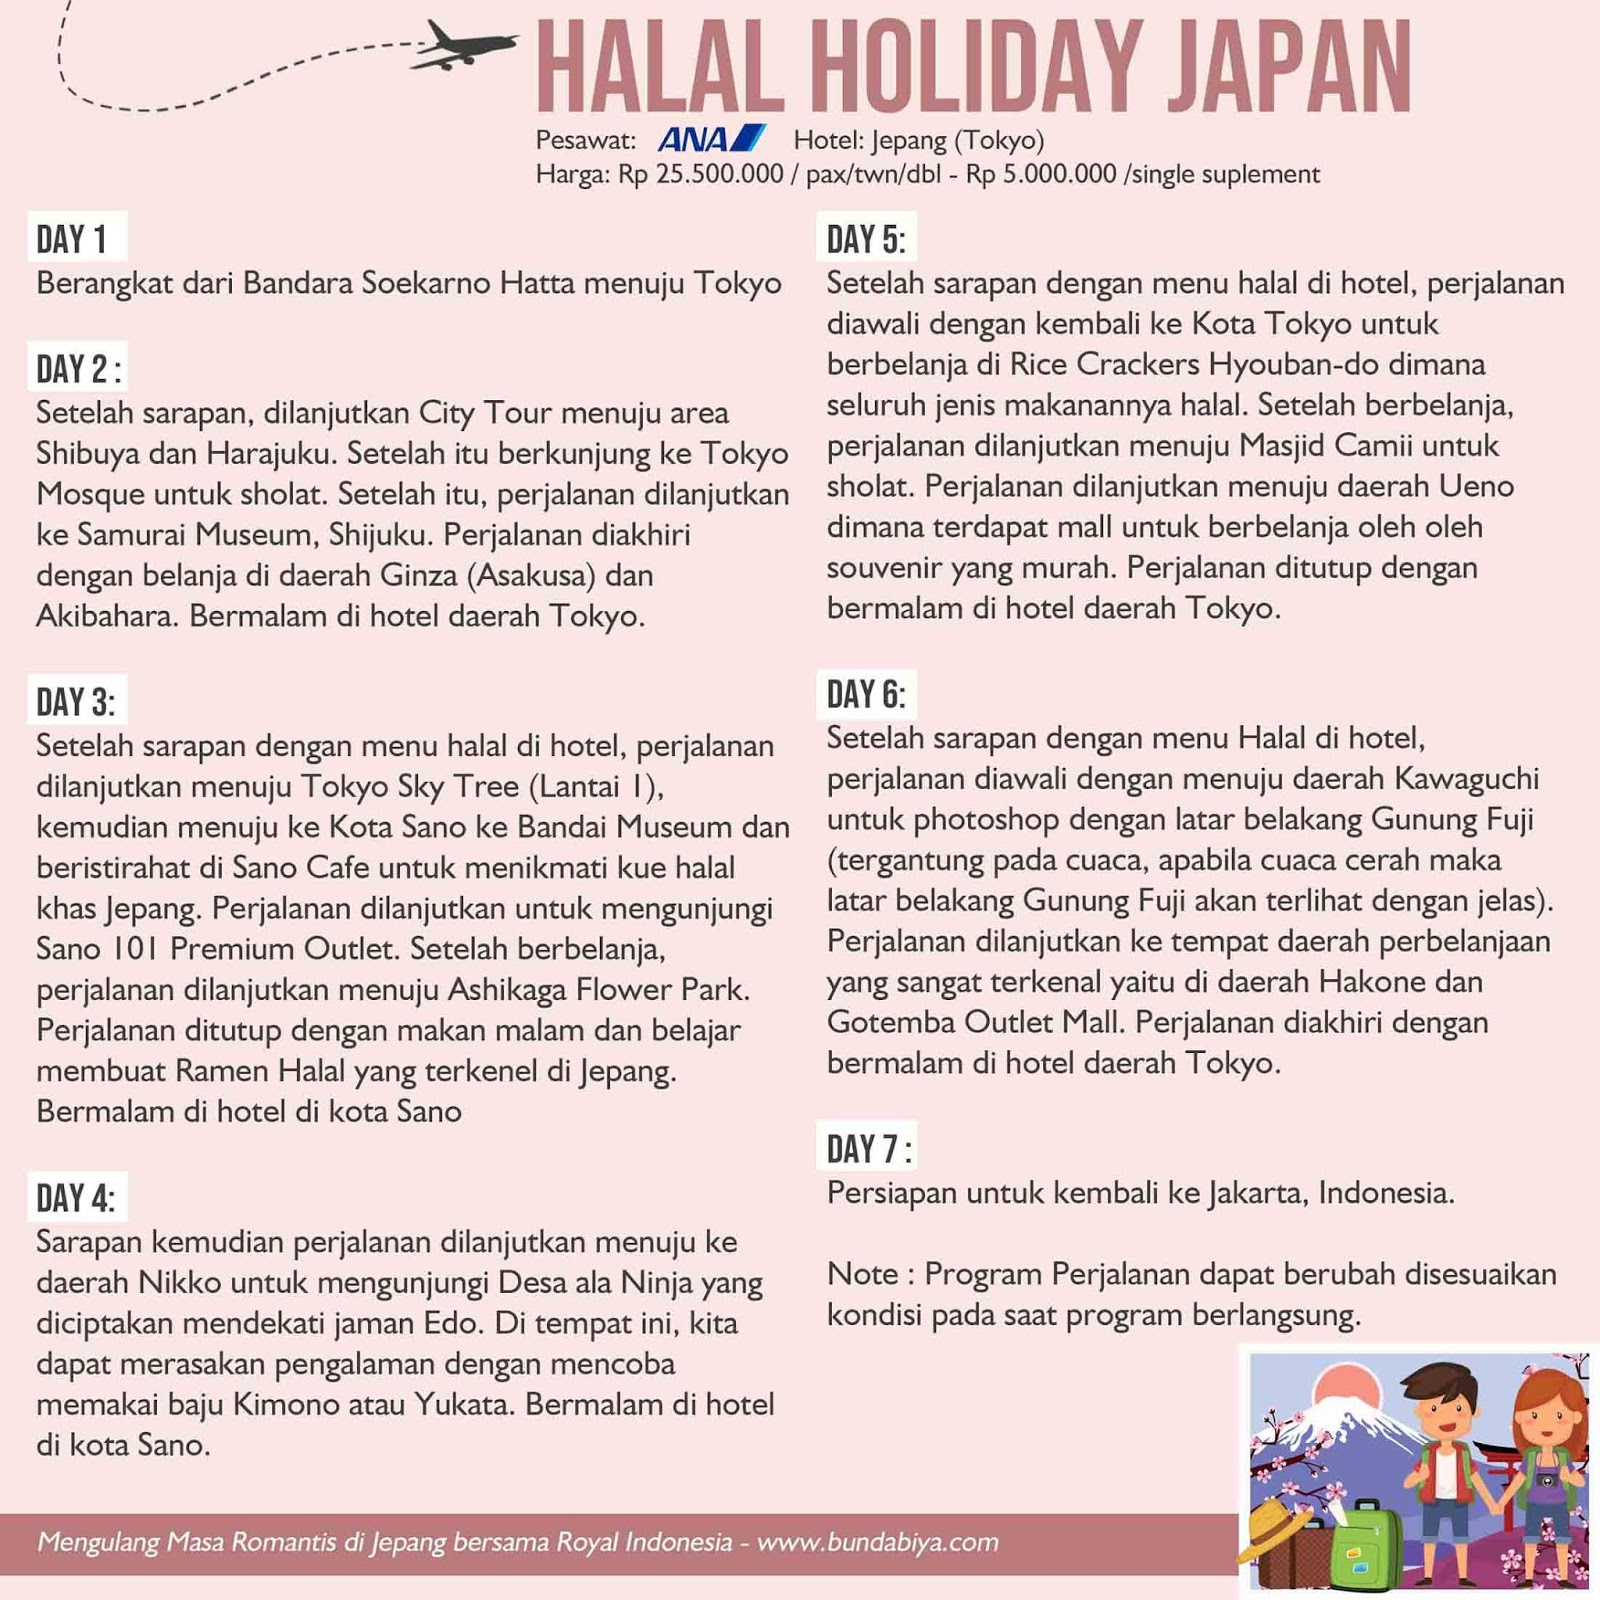 royal indonesia travel, lomba blog royal indonesia, halal tour japan, halal tour tokyo, halal tour hiroshima, review royal indonesia travel, halal tour royal indonesia travel